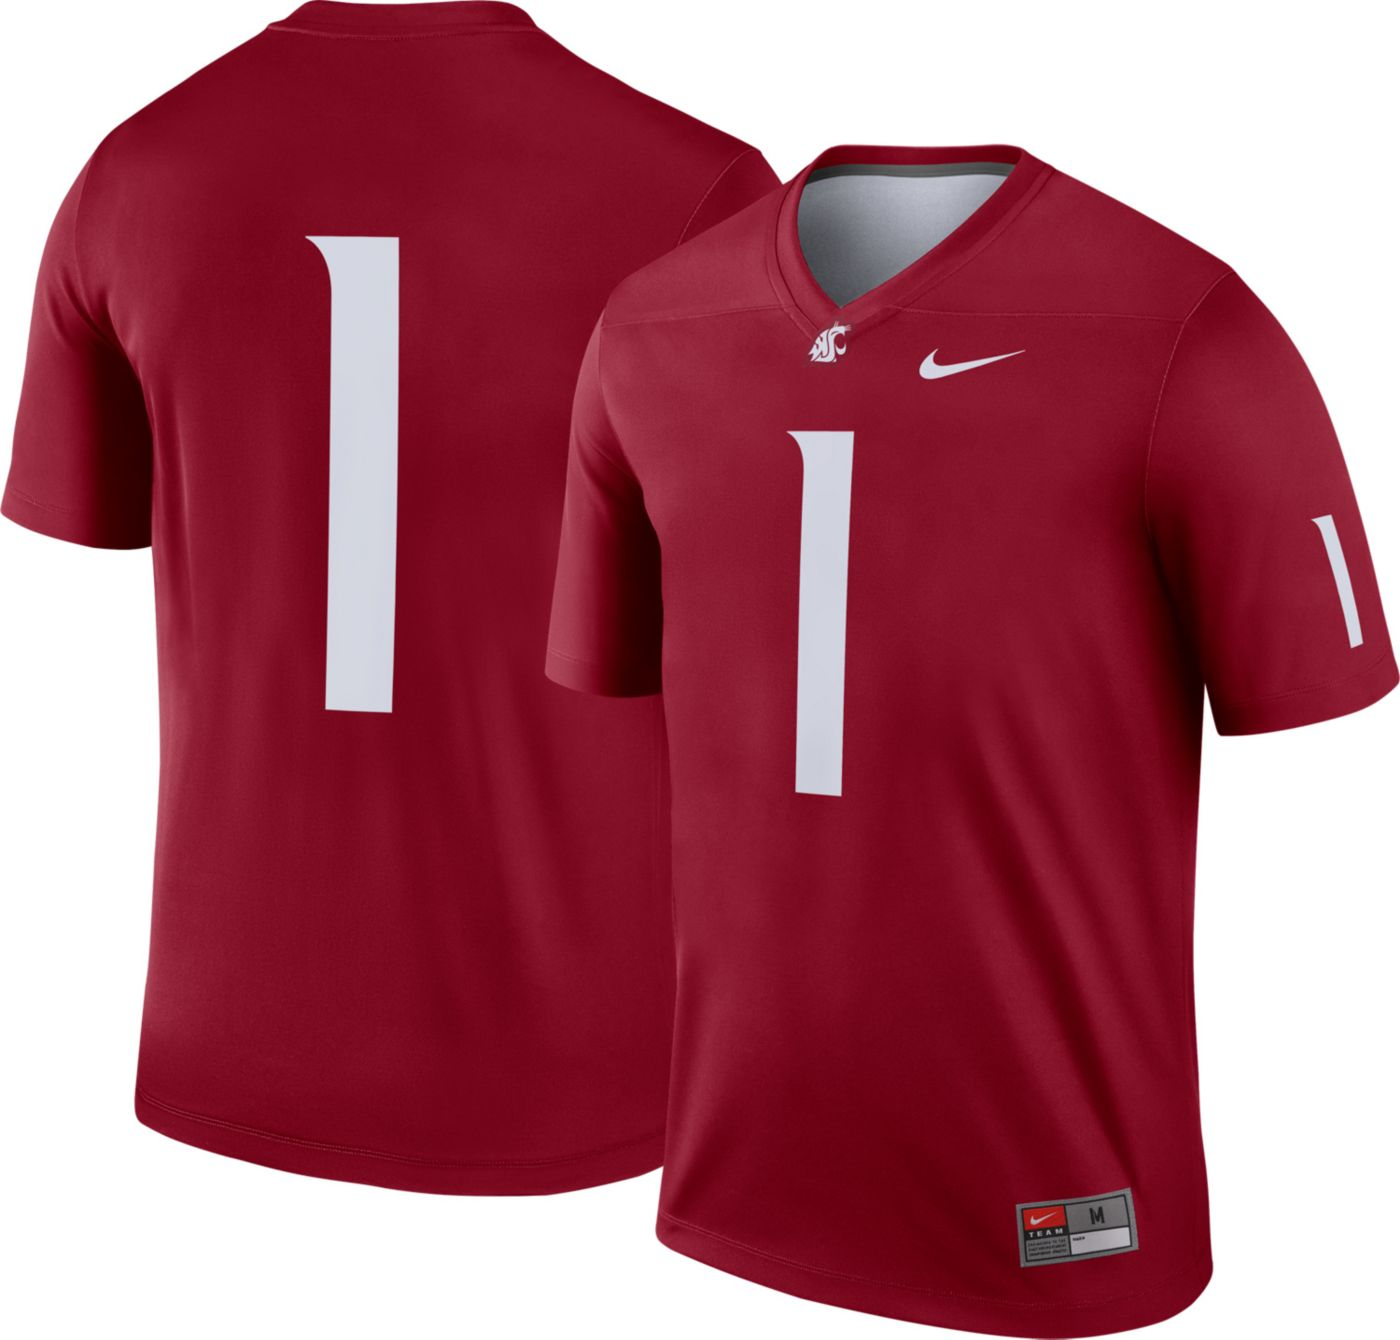 Nike Men's Washington State Cougars #1 Crimson Dri-FIT Legend Football Jersey